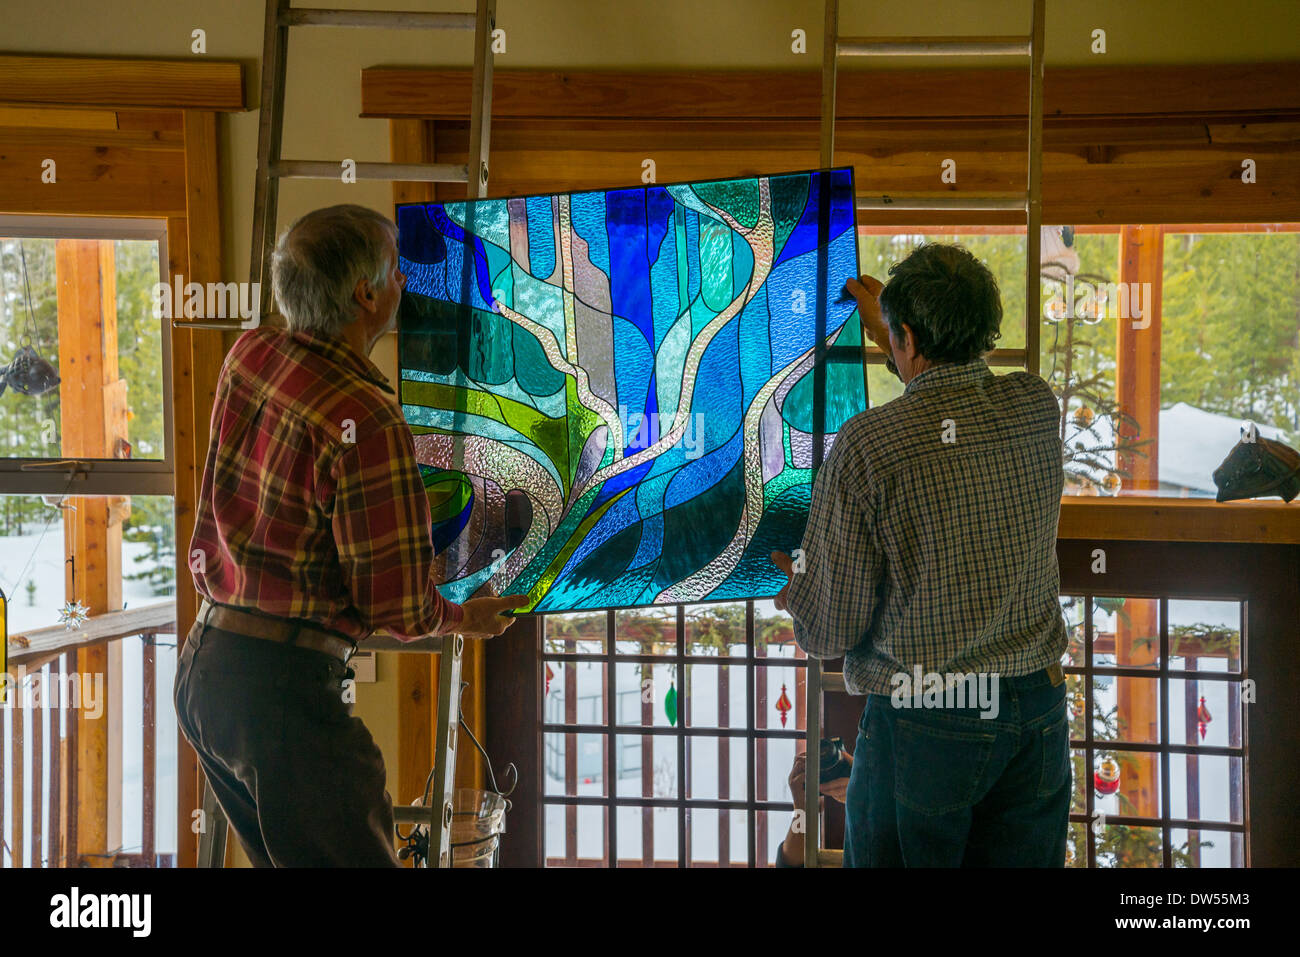 Beautiful stained glass window installation. Designed and crafted by artist Katarzyna Baldys. Stock Photo